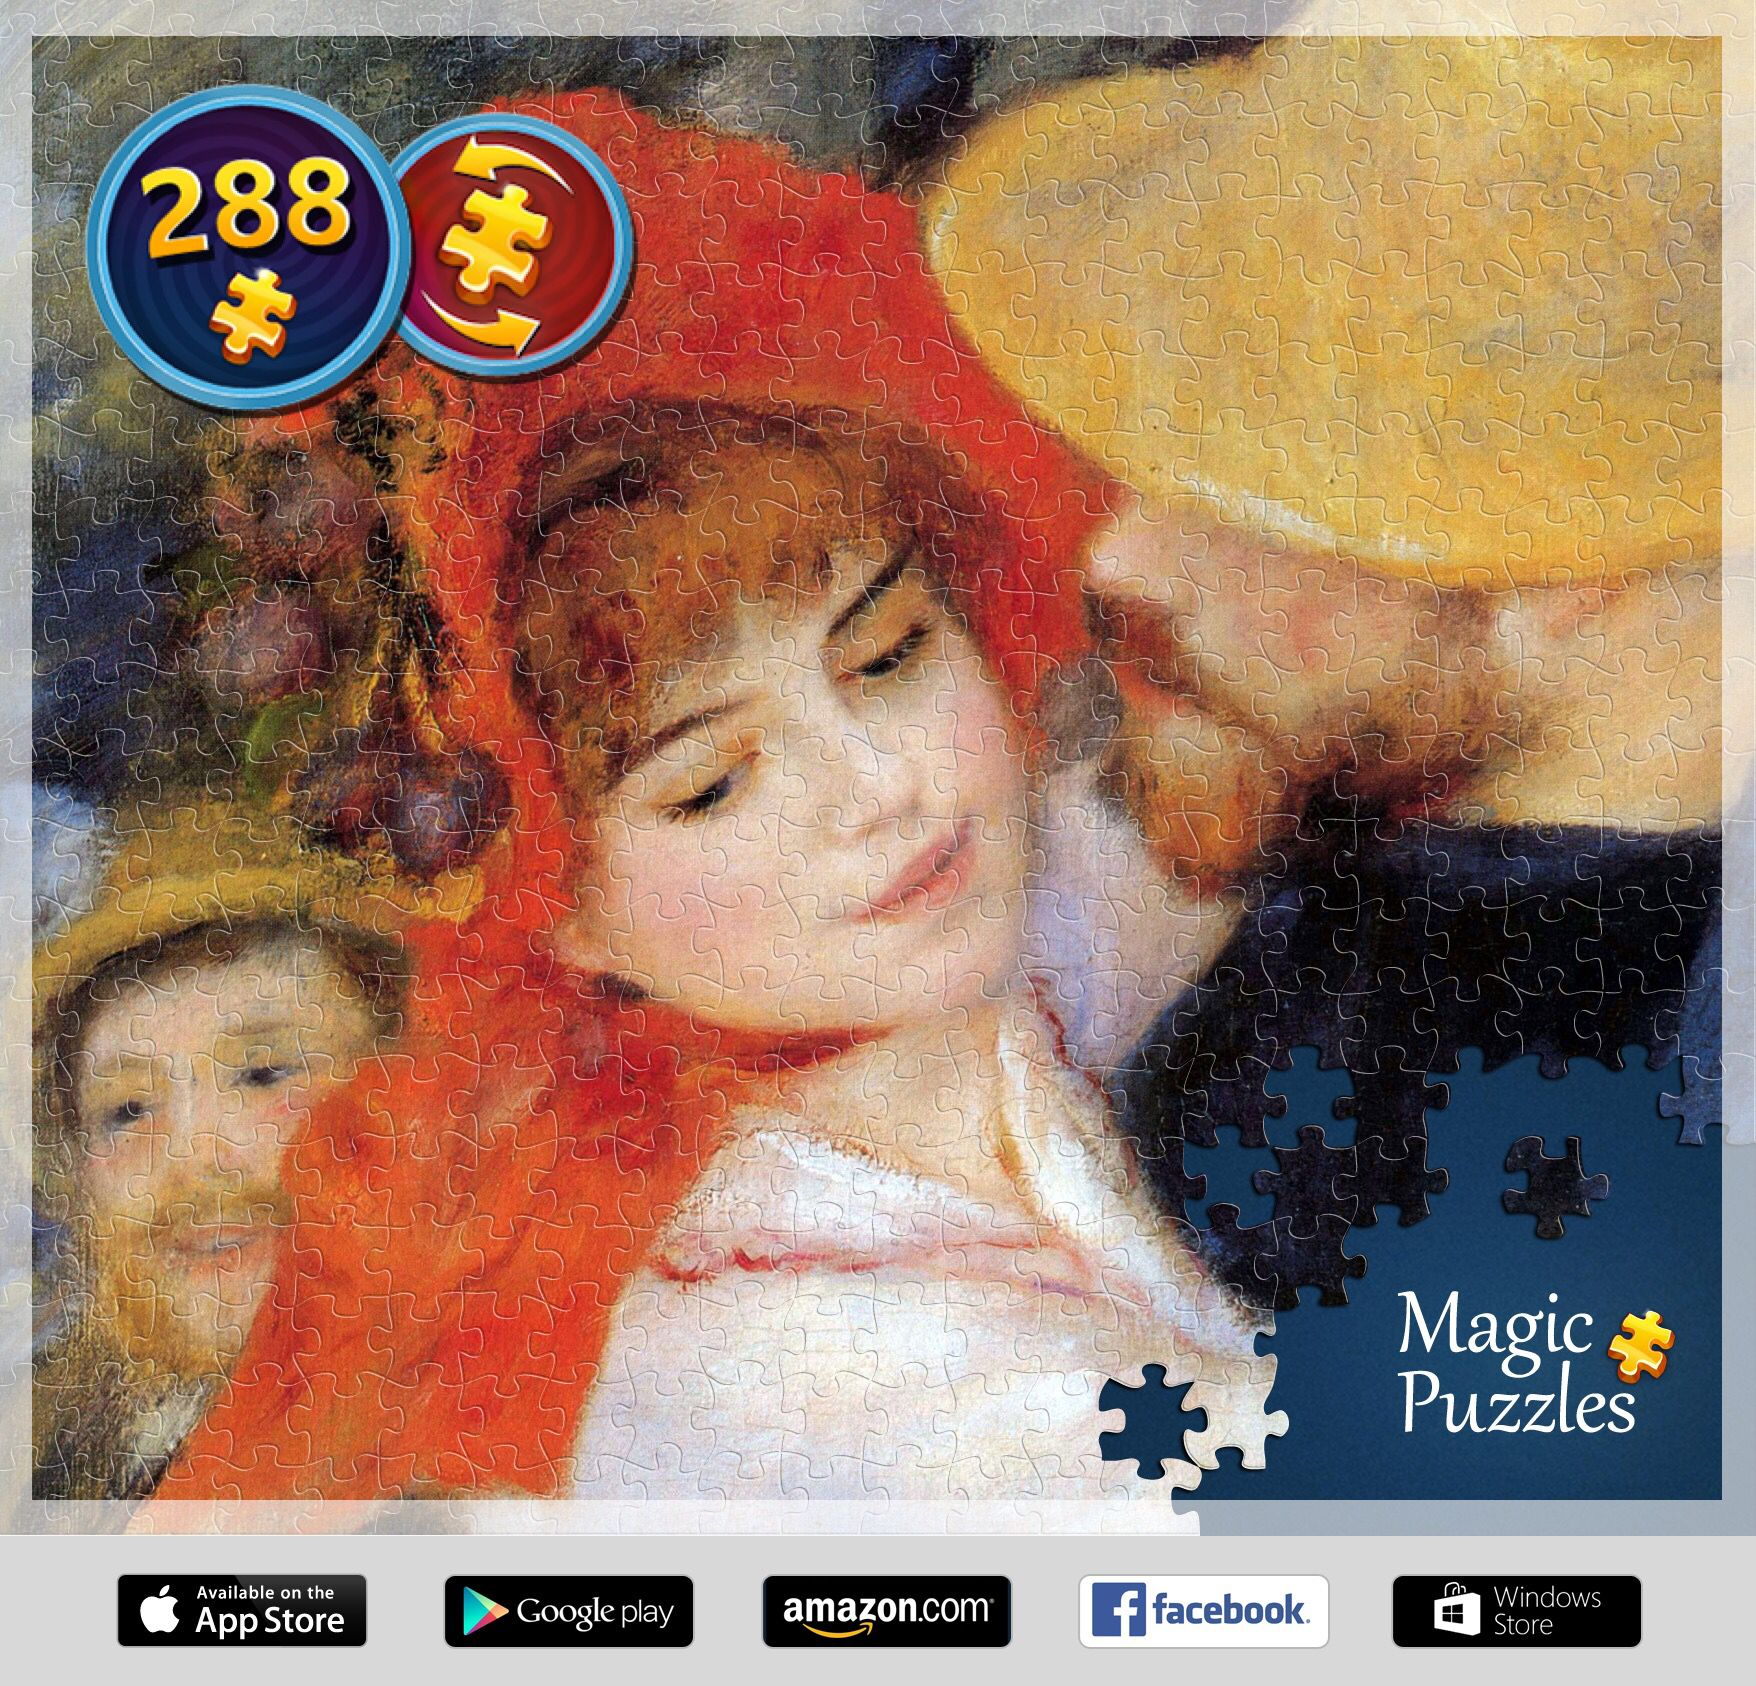 I've just solved this puzzle in the Magic Jigsaw Puzzles